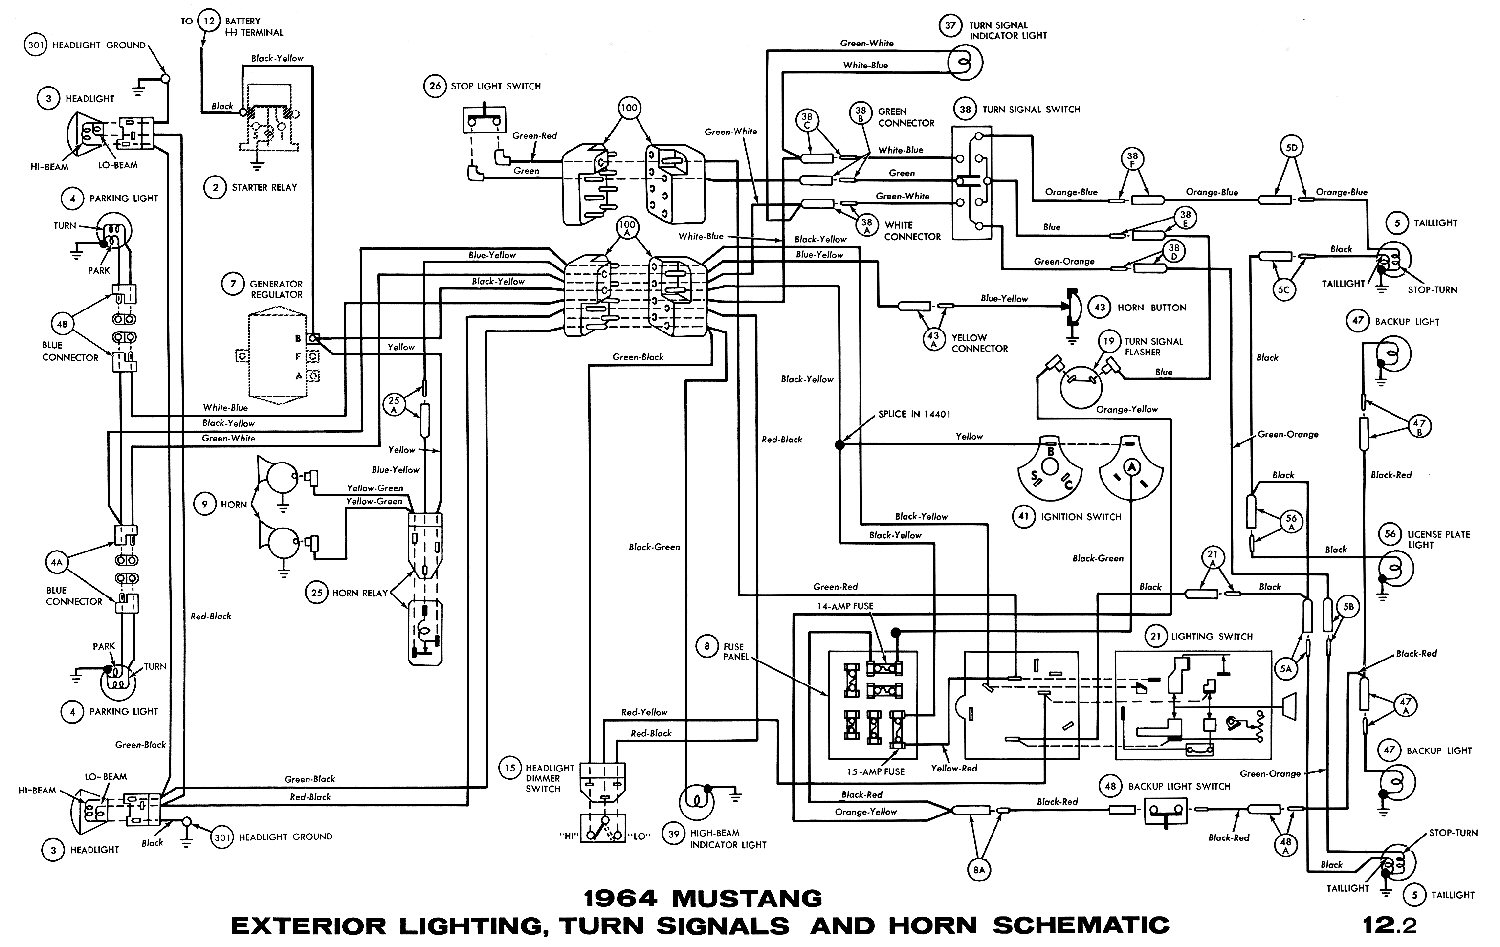 1964i 69 mustang wiring diagram 1969 ford f100 wiring diagram \u2022 wiring engine wiring diagram 1967 mustang v8 at mifinder.co